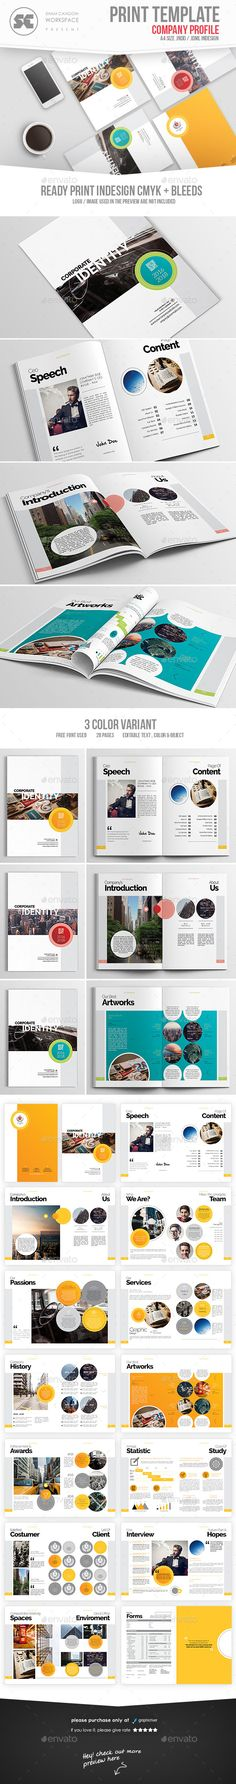 Company Profile Template InDesign INDD Company Profile Design - company profile templates